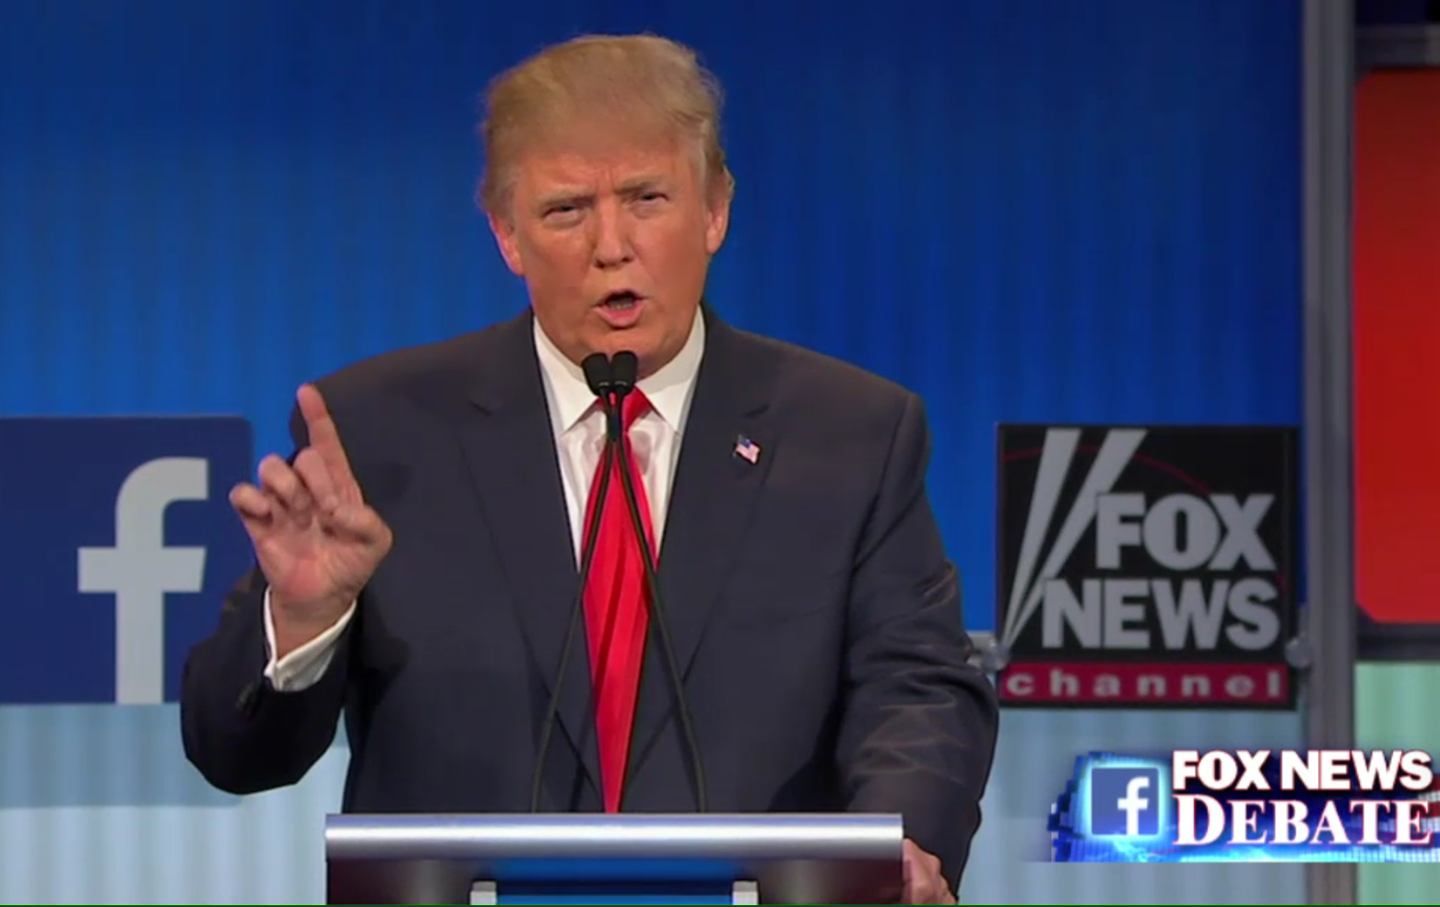 articles donald trump misogynist comments apology video